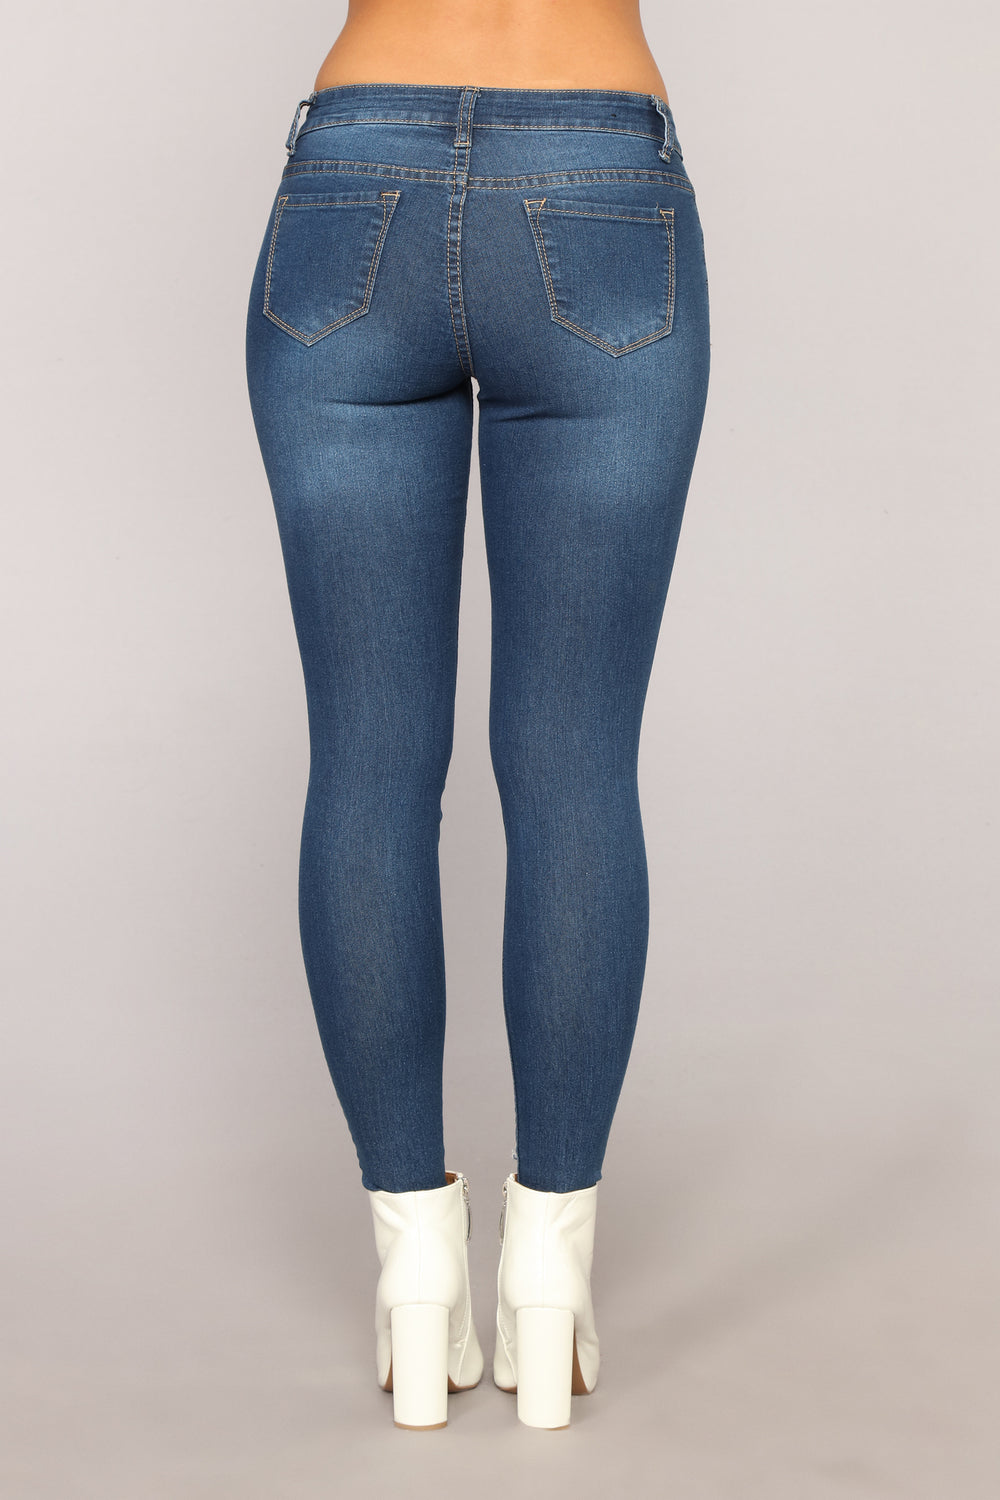 Girl On The Go Distressed Jeans - Medium Blue Wash